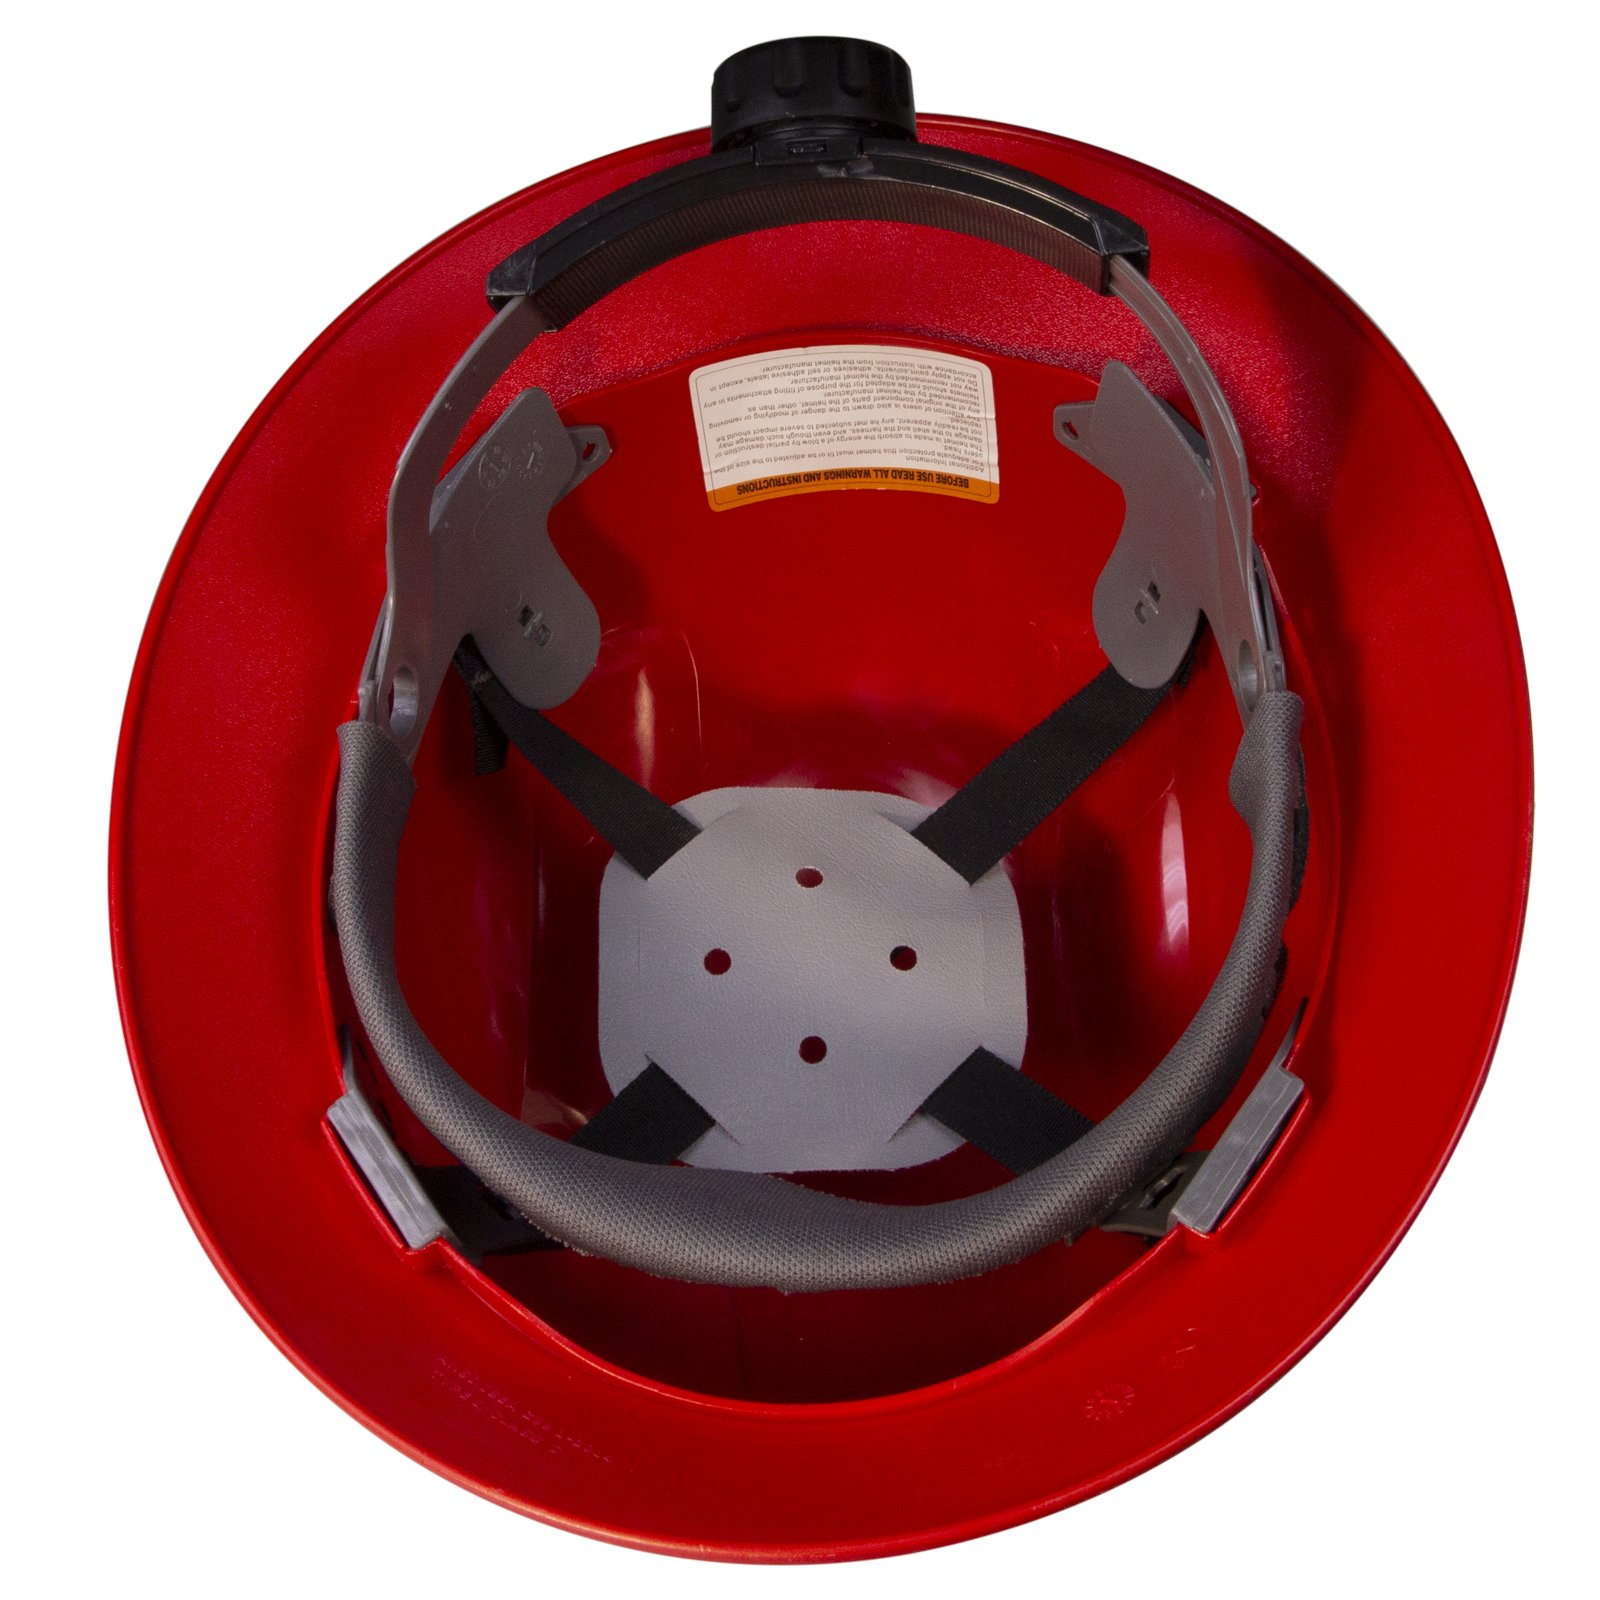 PPE By JORESTECH - HDPE Full Brim Style Hard Hat Helmet w/Adjustable Ratchet Suspension For Work, Home, and General Headwear Protection ANSI Z89.1-14 Compliant (Red) by JORESTECH (Image #5)